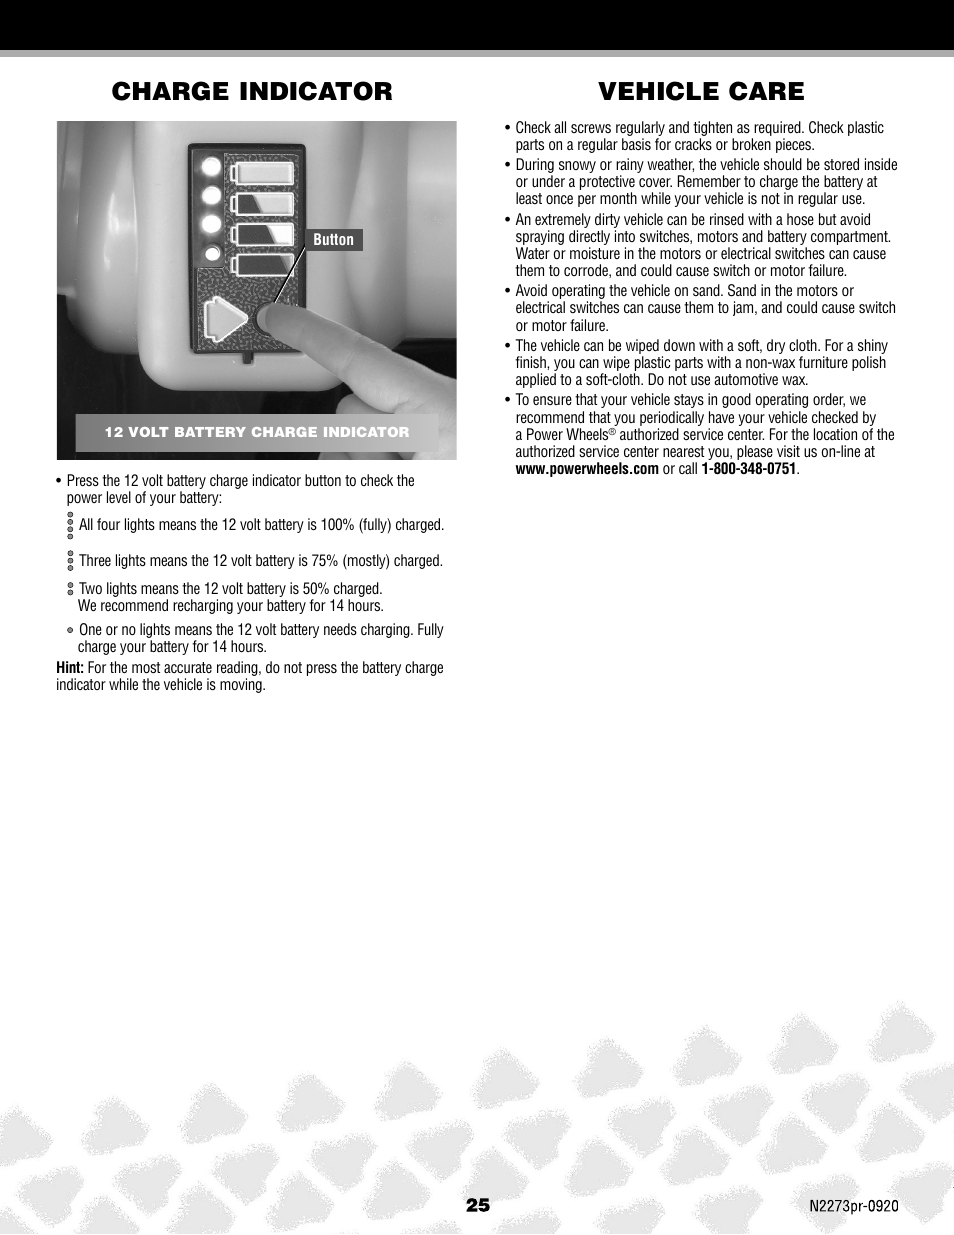 Vehicle Care Charge Indicator Fisher Price Jeep Hurricane N2273 Battery Level User Manual Page 25 32